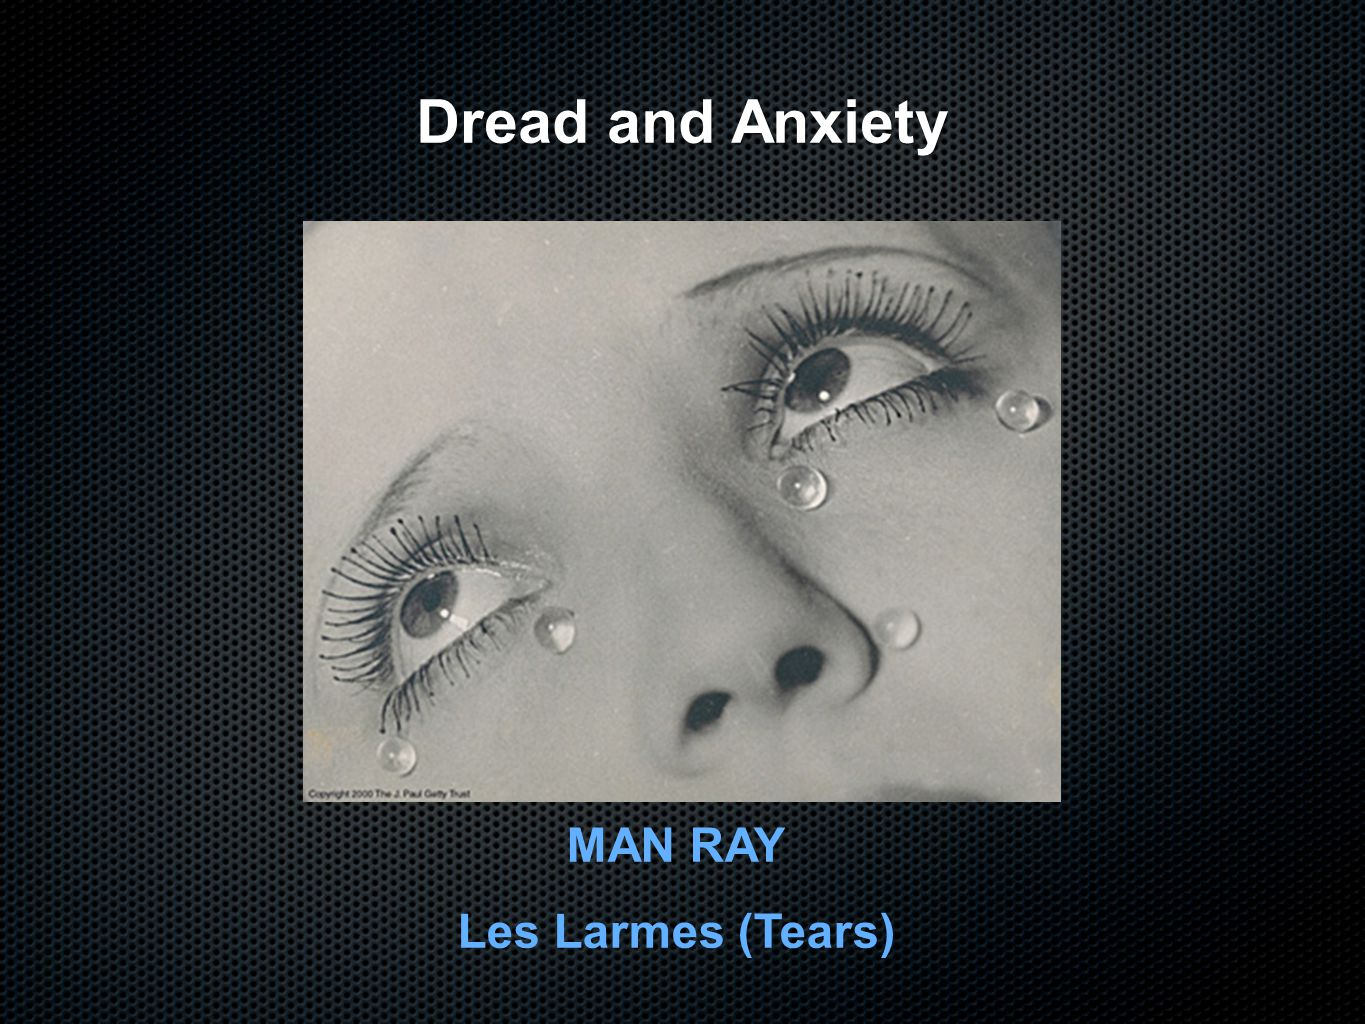 Dread and Anxiety MAN RAY Les Larmes (Tears)